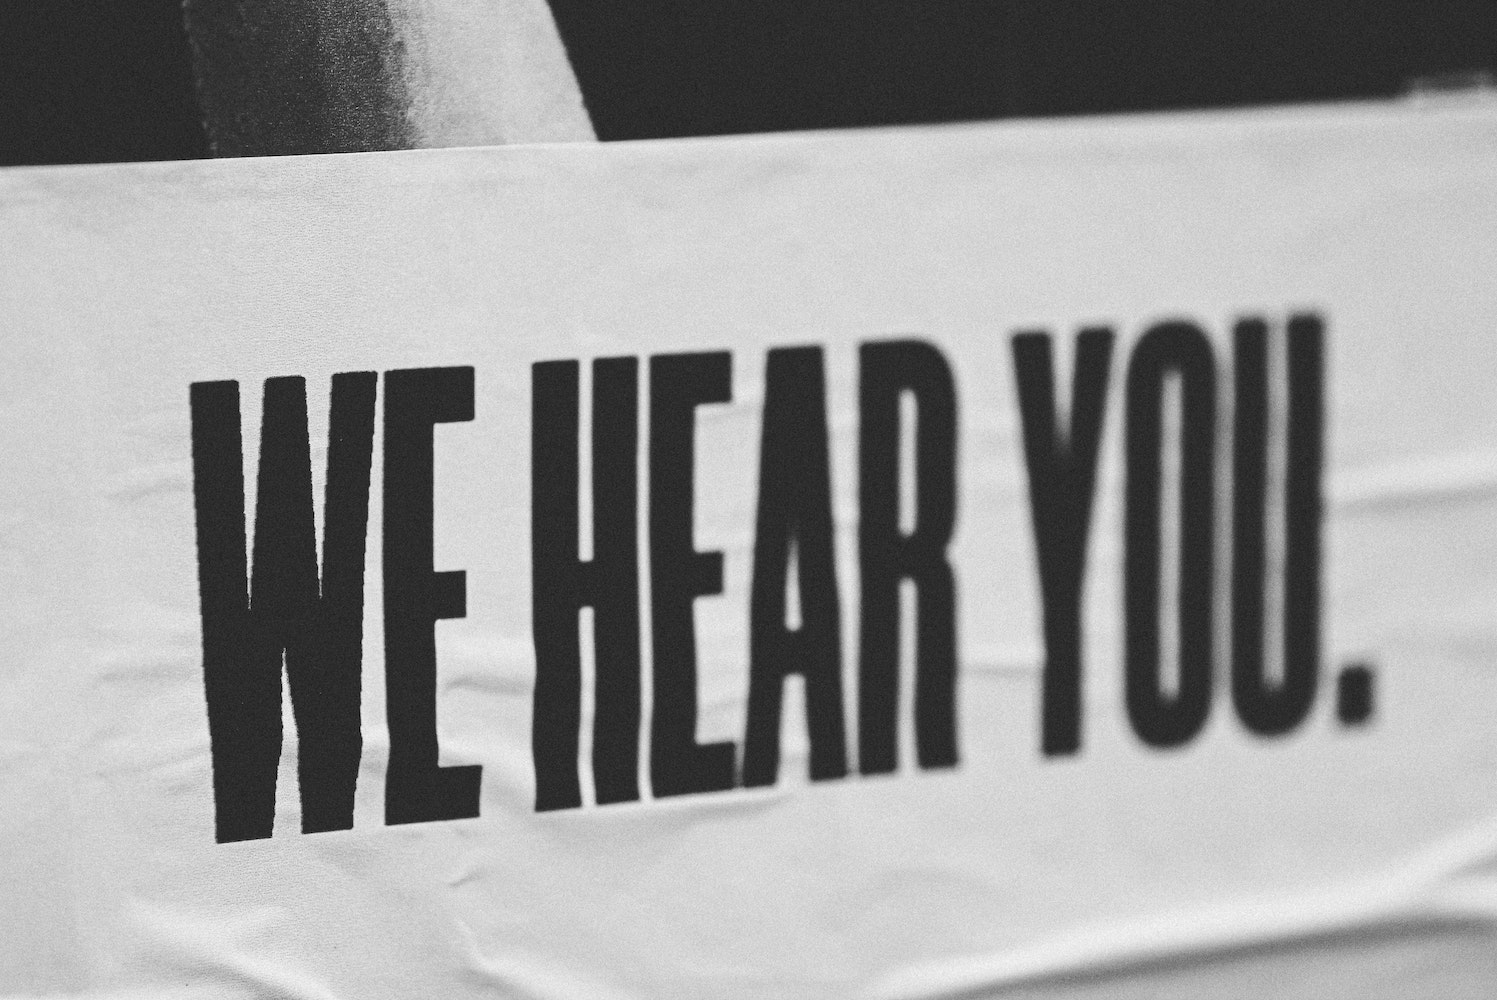 """posted banner reads """"We Hear You"""""""